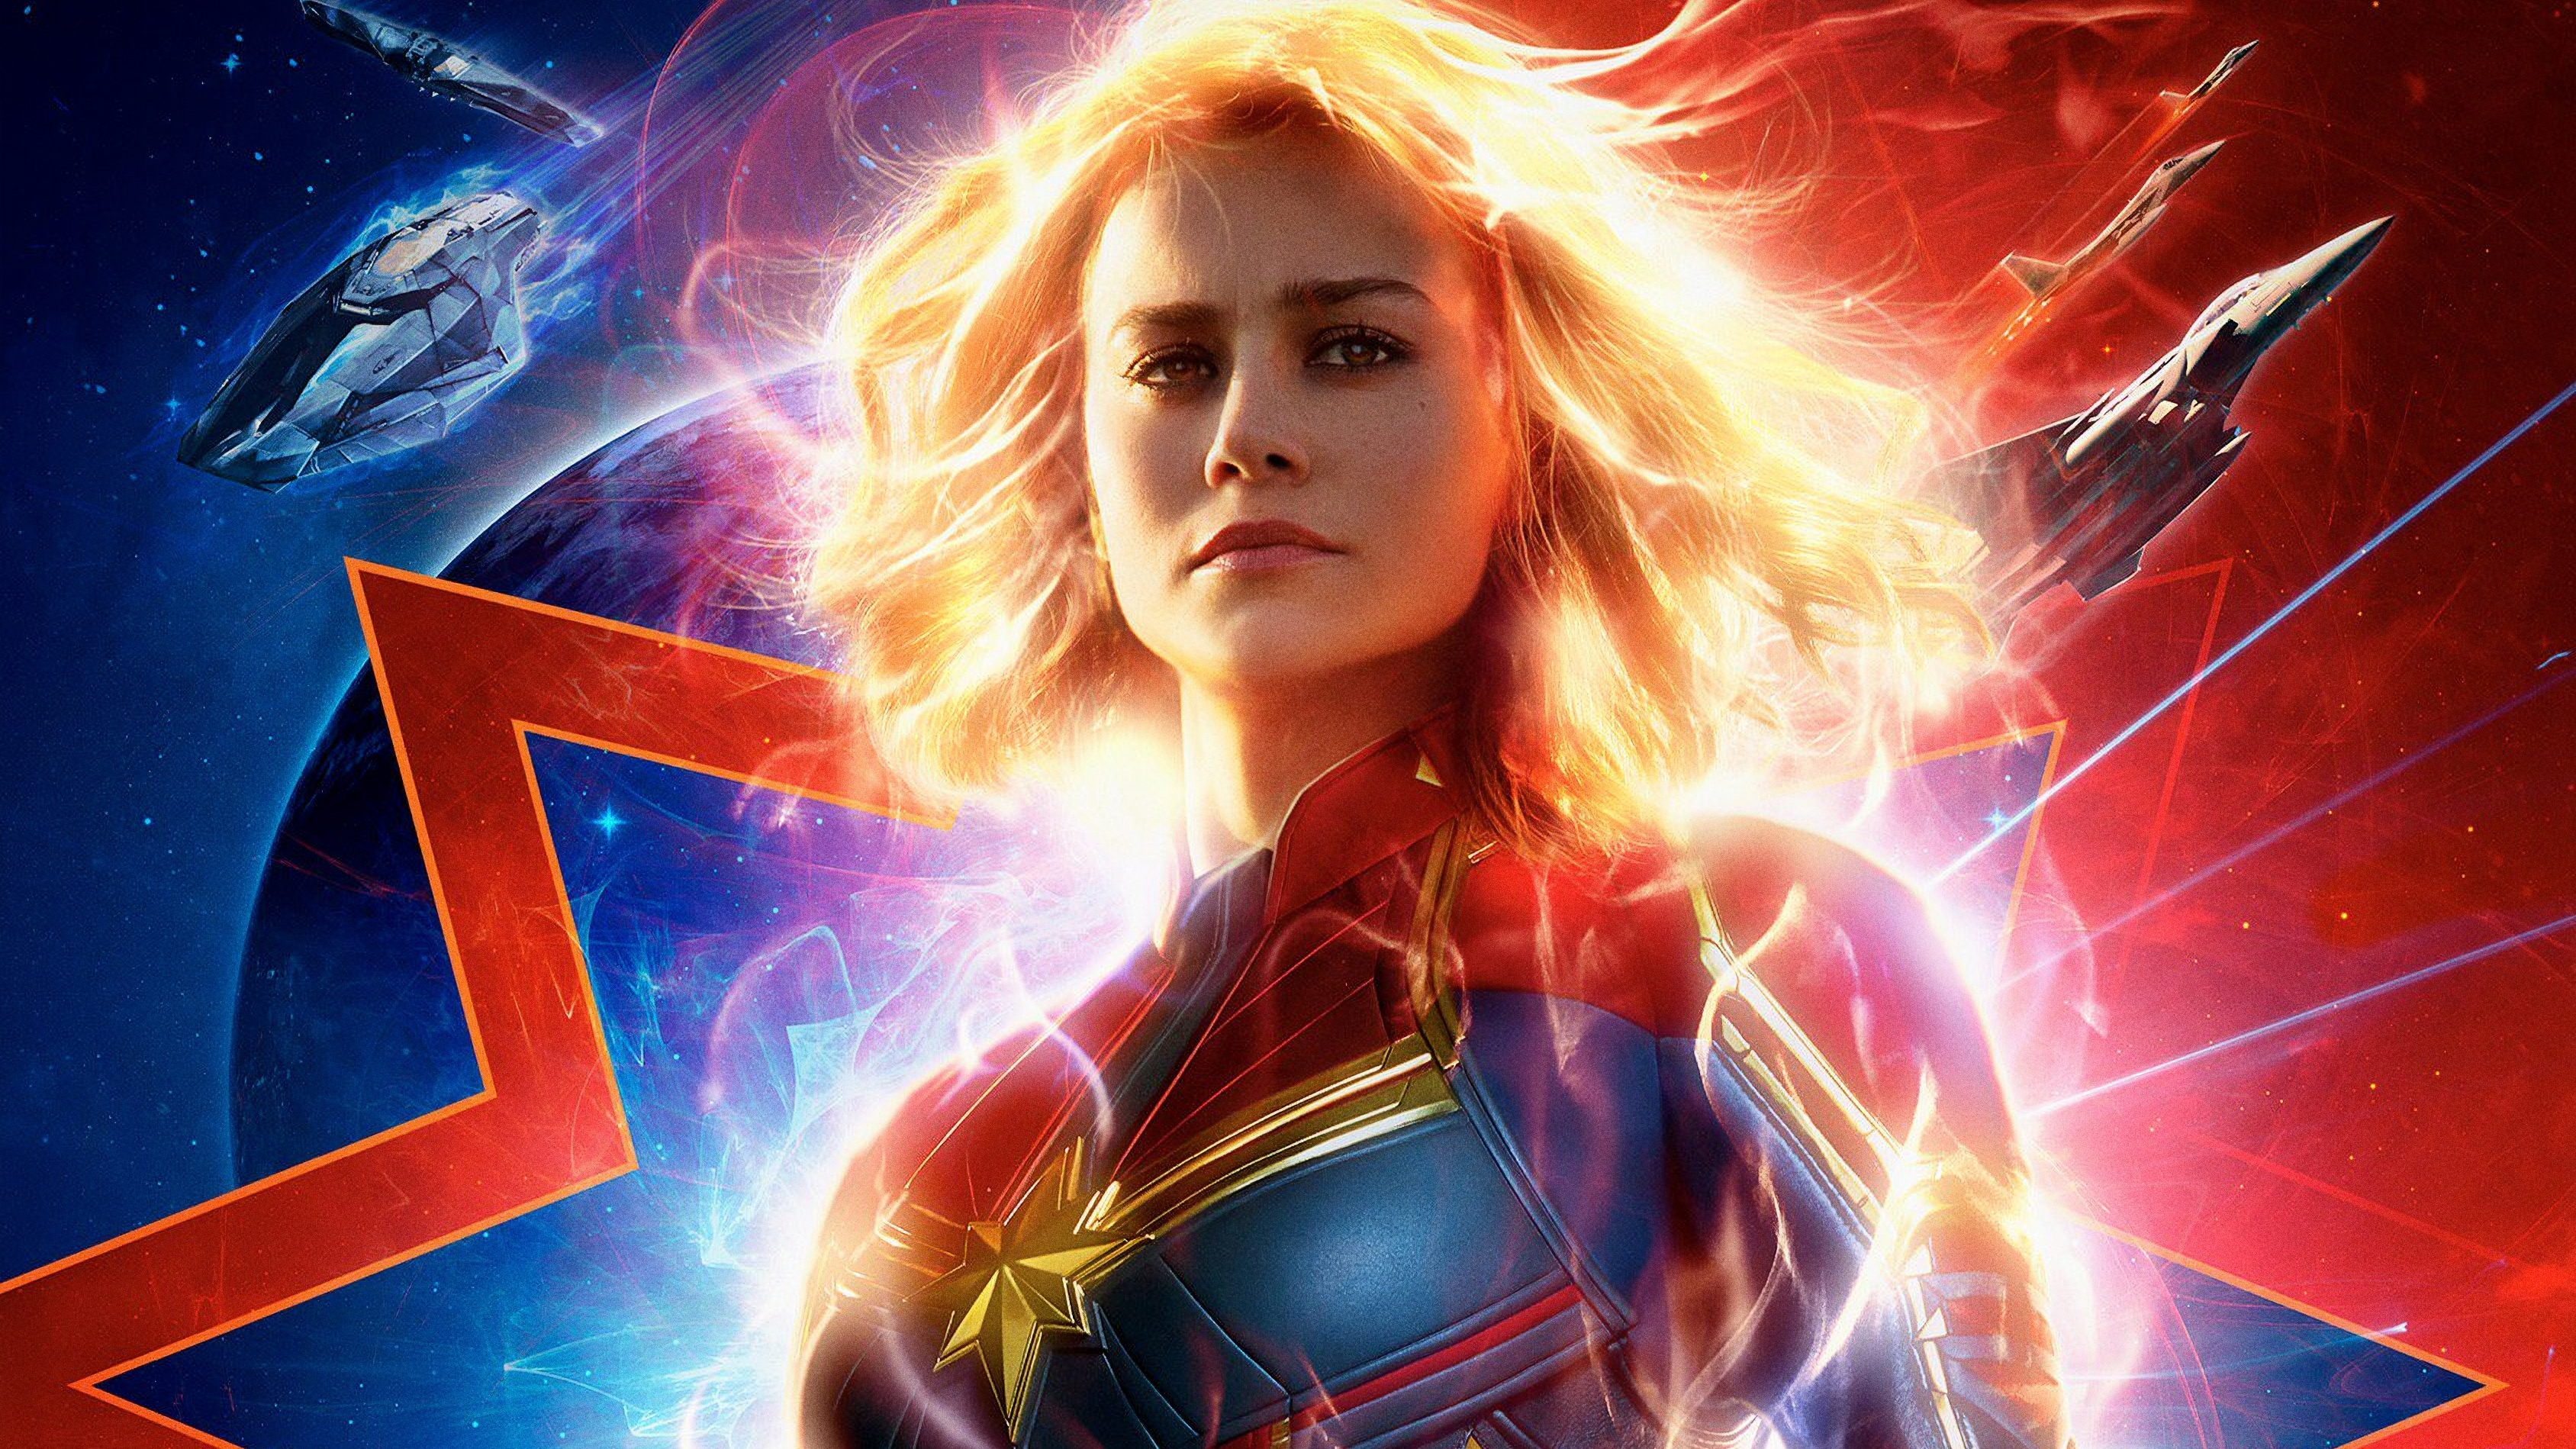 Captain Marvel Movie 2019 4k Hd Movies 4k Wallpapers Images Backgrounds Photos And Pictures